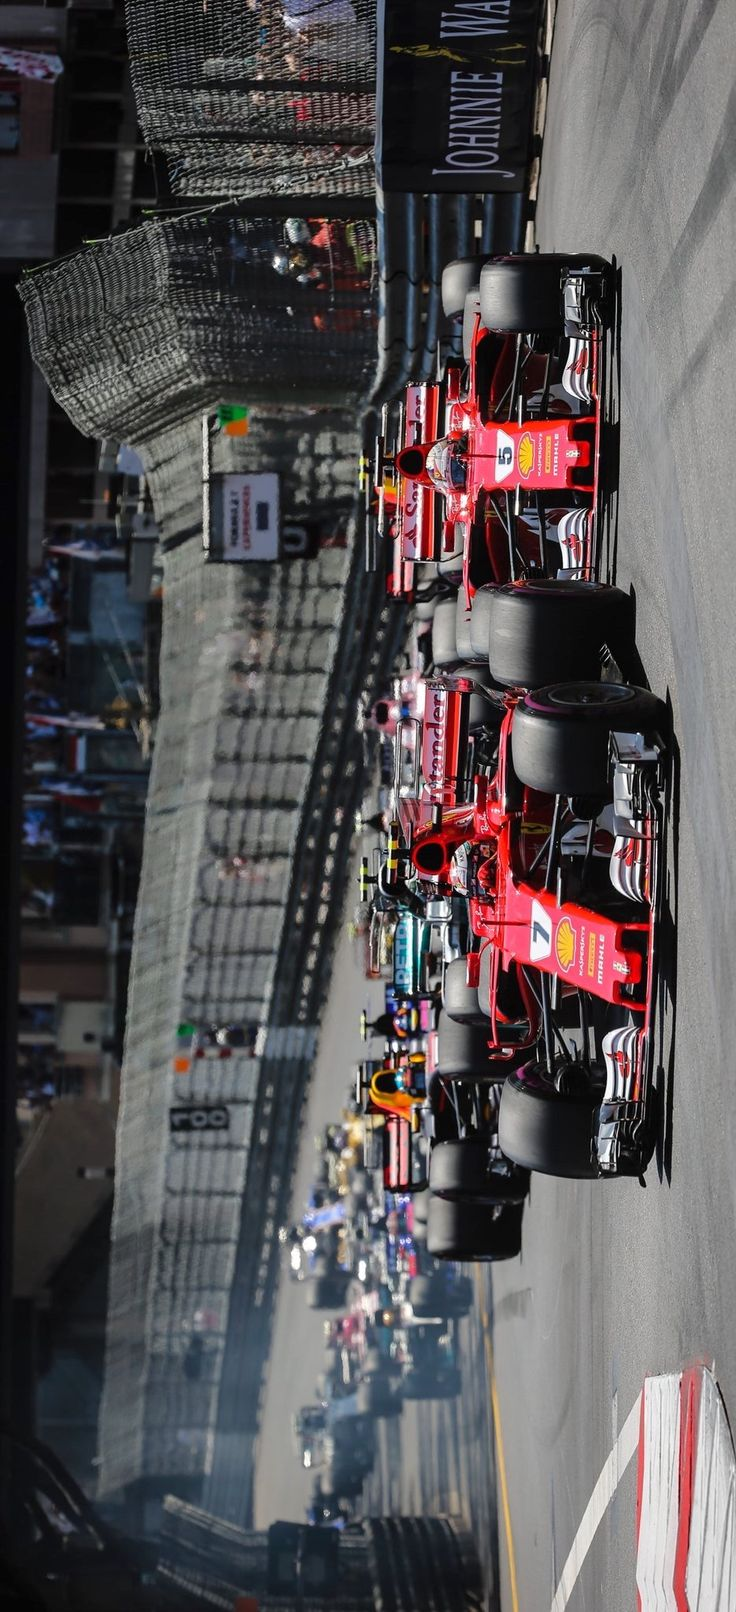 """2017/5/29:Twitter:.@F1:""""Lights out and away we go..."""" watch #MonacoGP #F1 highlights >> youtu.be/MzQ8CzXRO8A"""